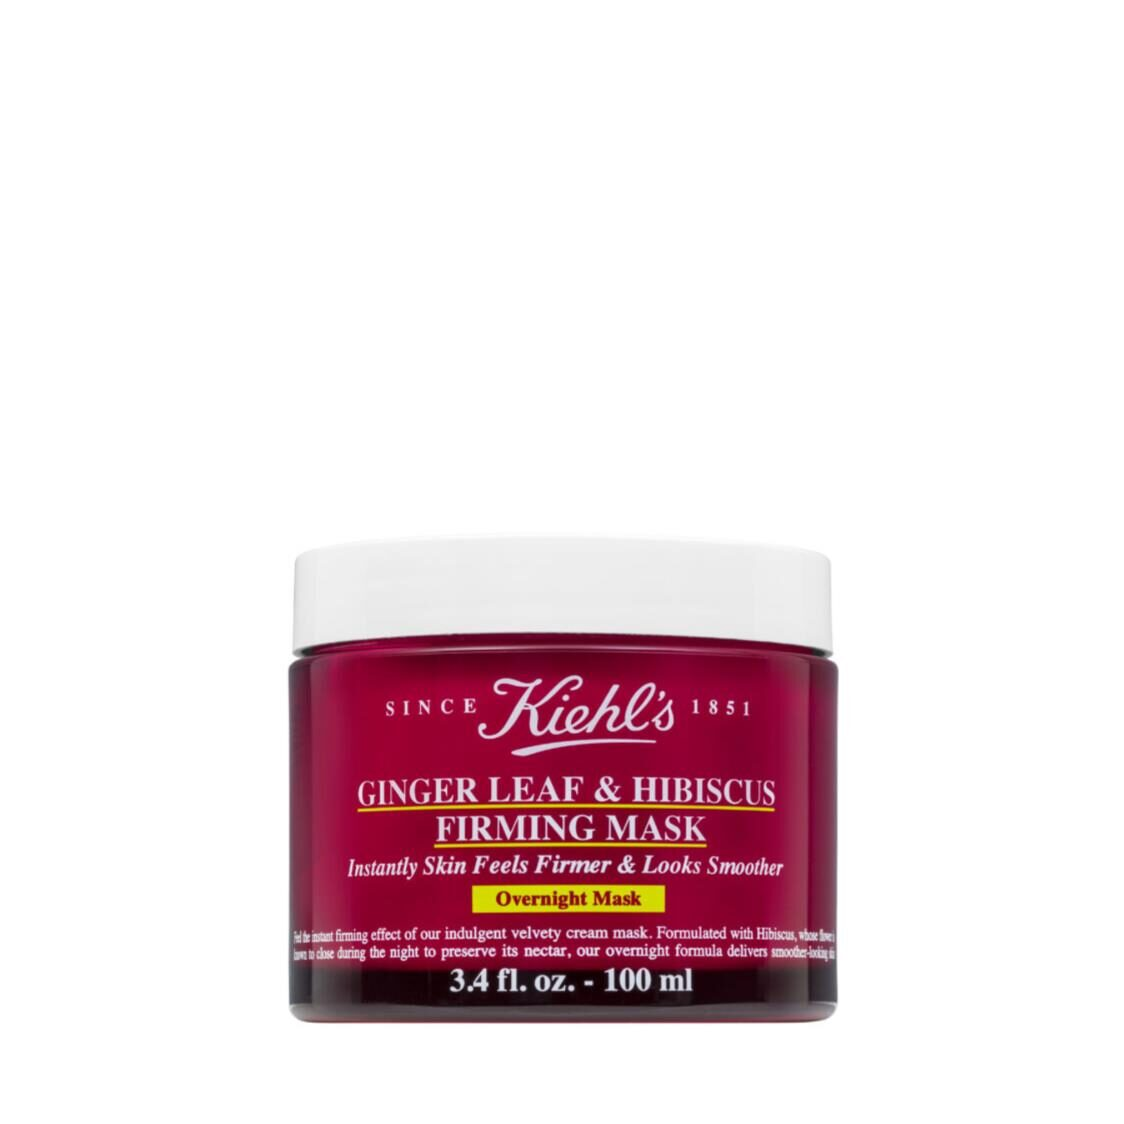 Kiehls Since 1851 Ginger Leaf and Hibiscus Firming Mask